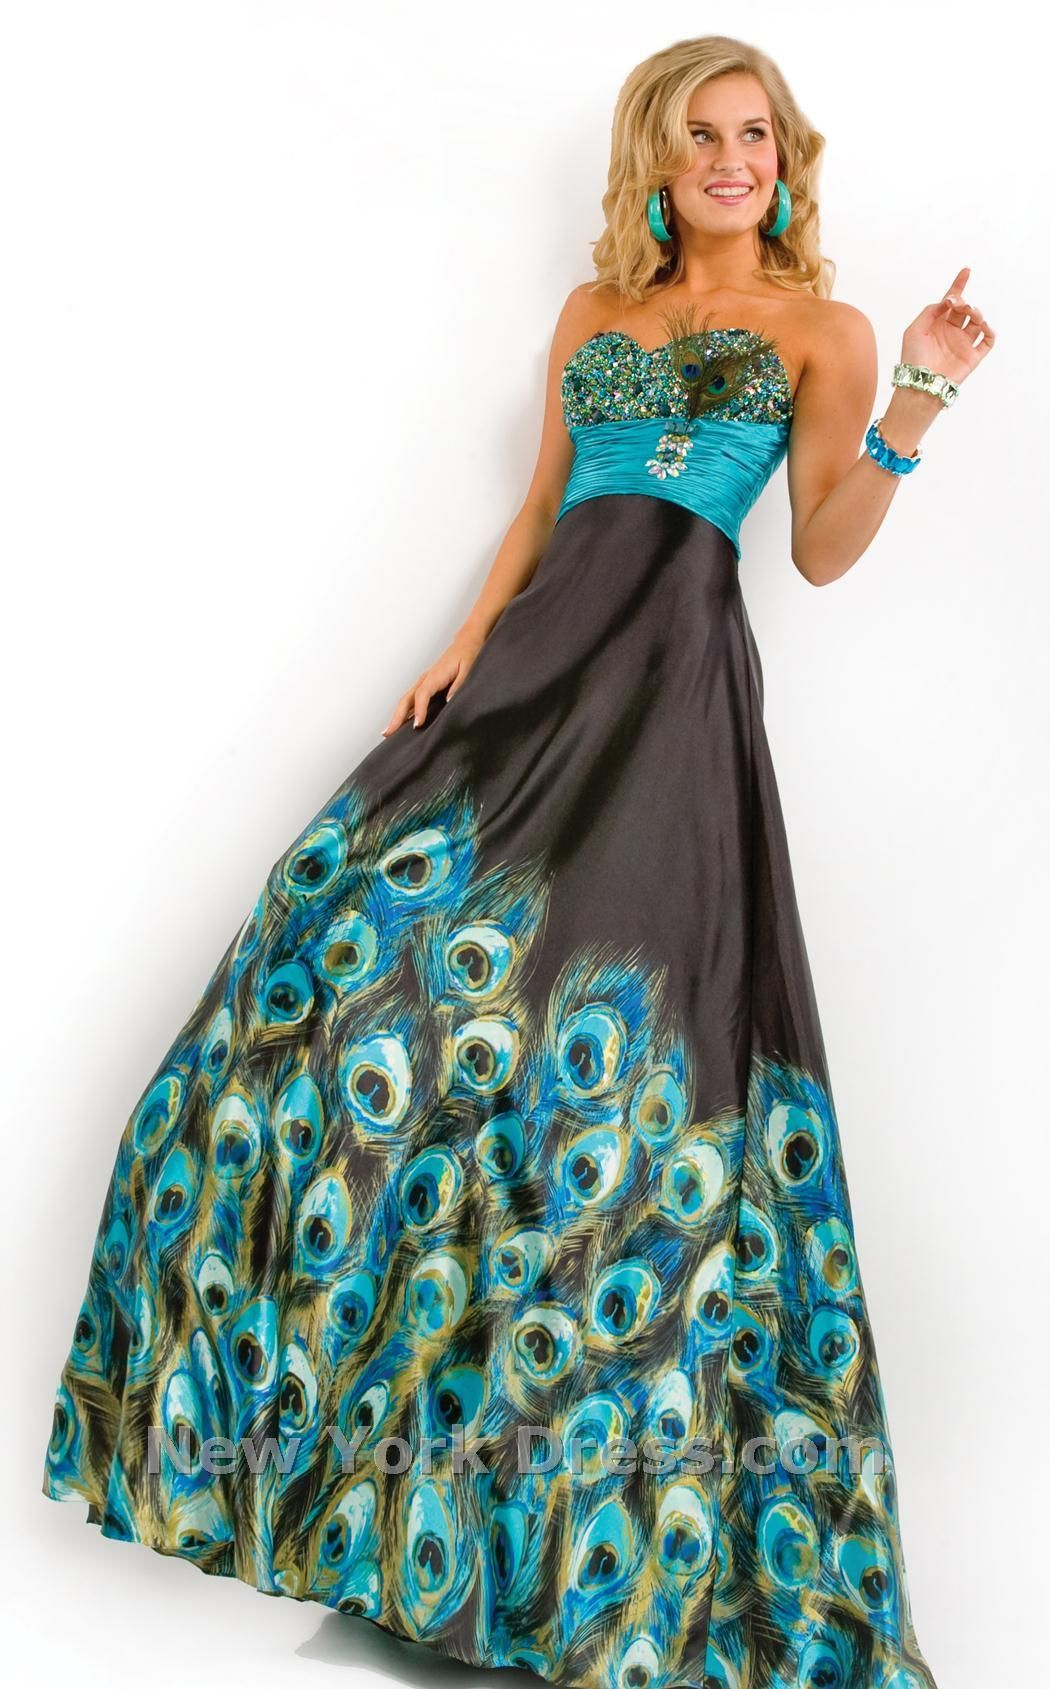 Peacock party dress | I wanna see your peacock | Pinterest | Party ...